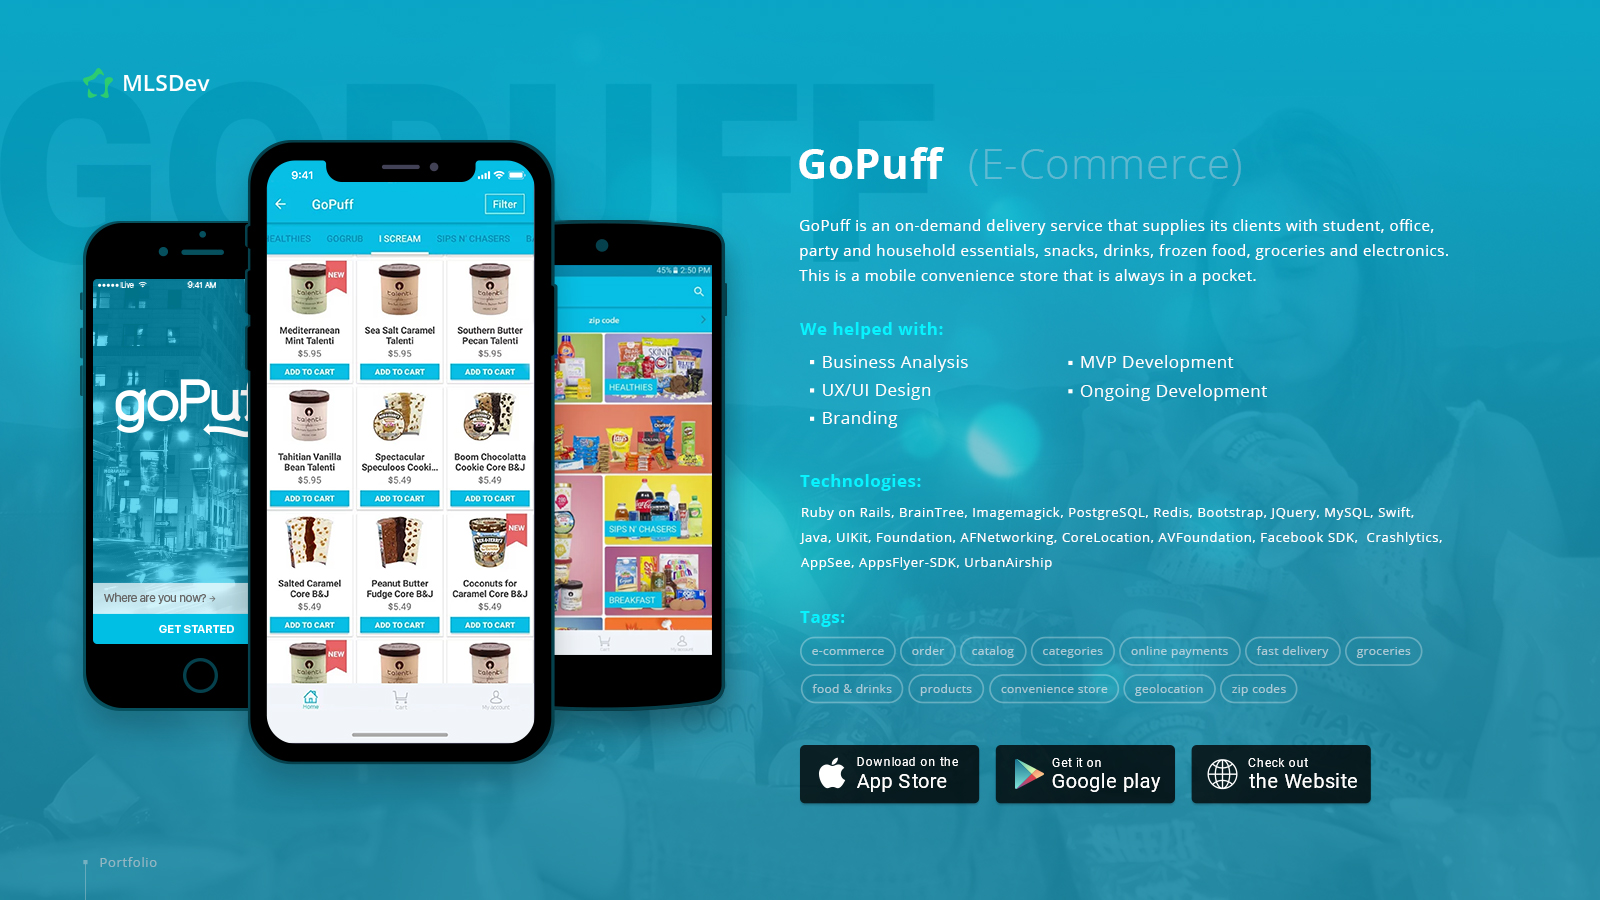 GoPuff On-Demand Delivery Service